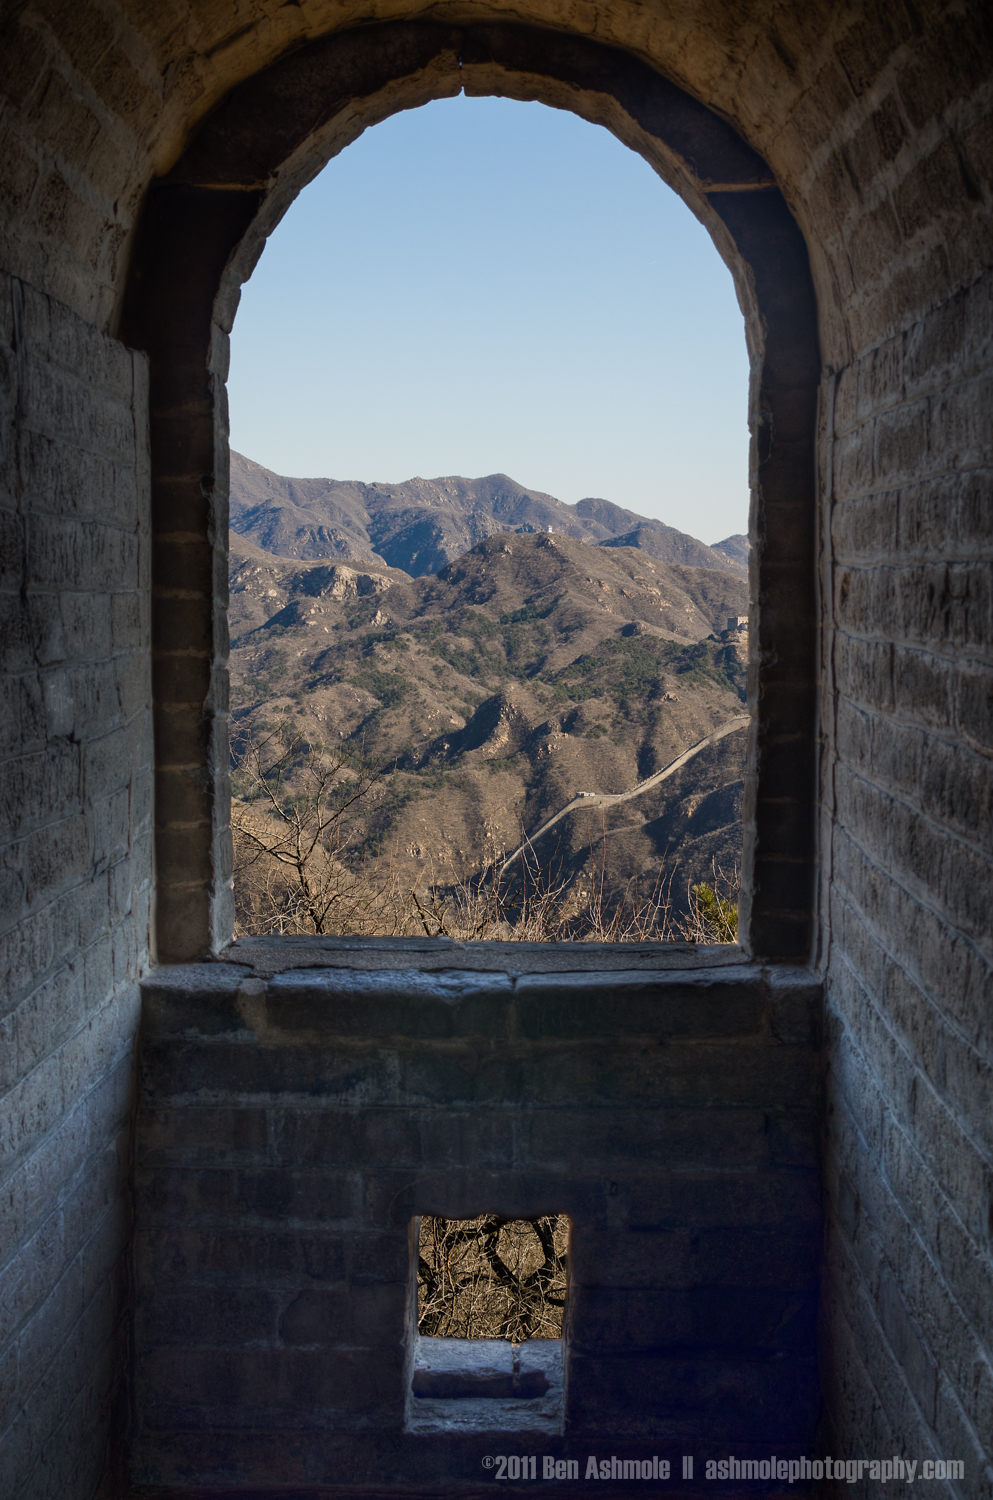 The Wall from the Window, Great Wall of China, Ben Ashmole